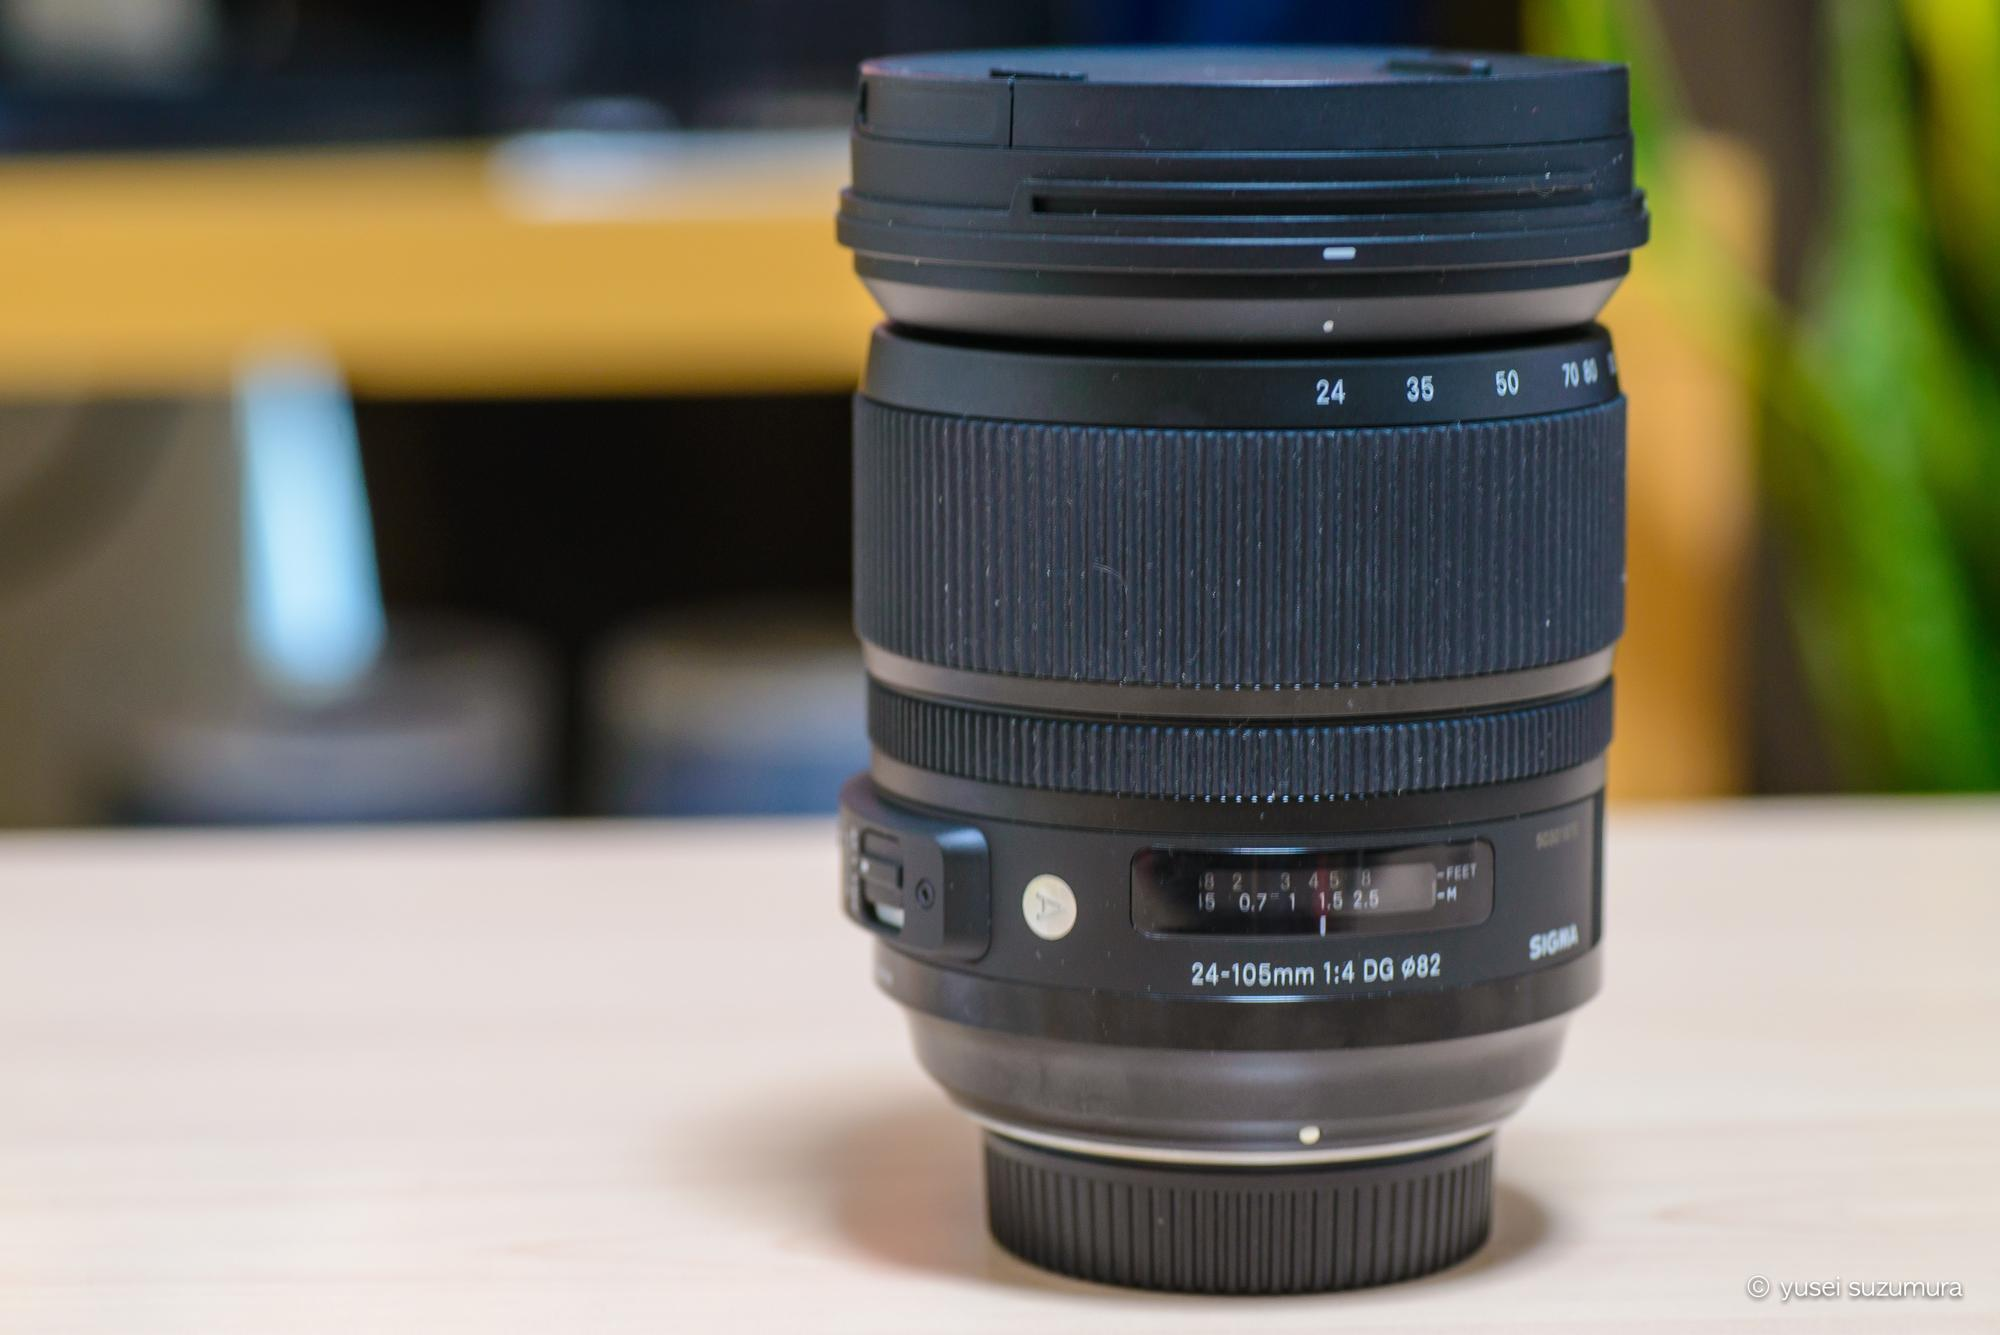 SIGMA 24-105mm F4 DG OS HSM  ART 本体